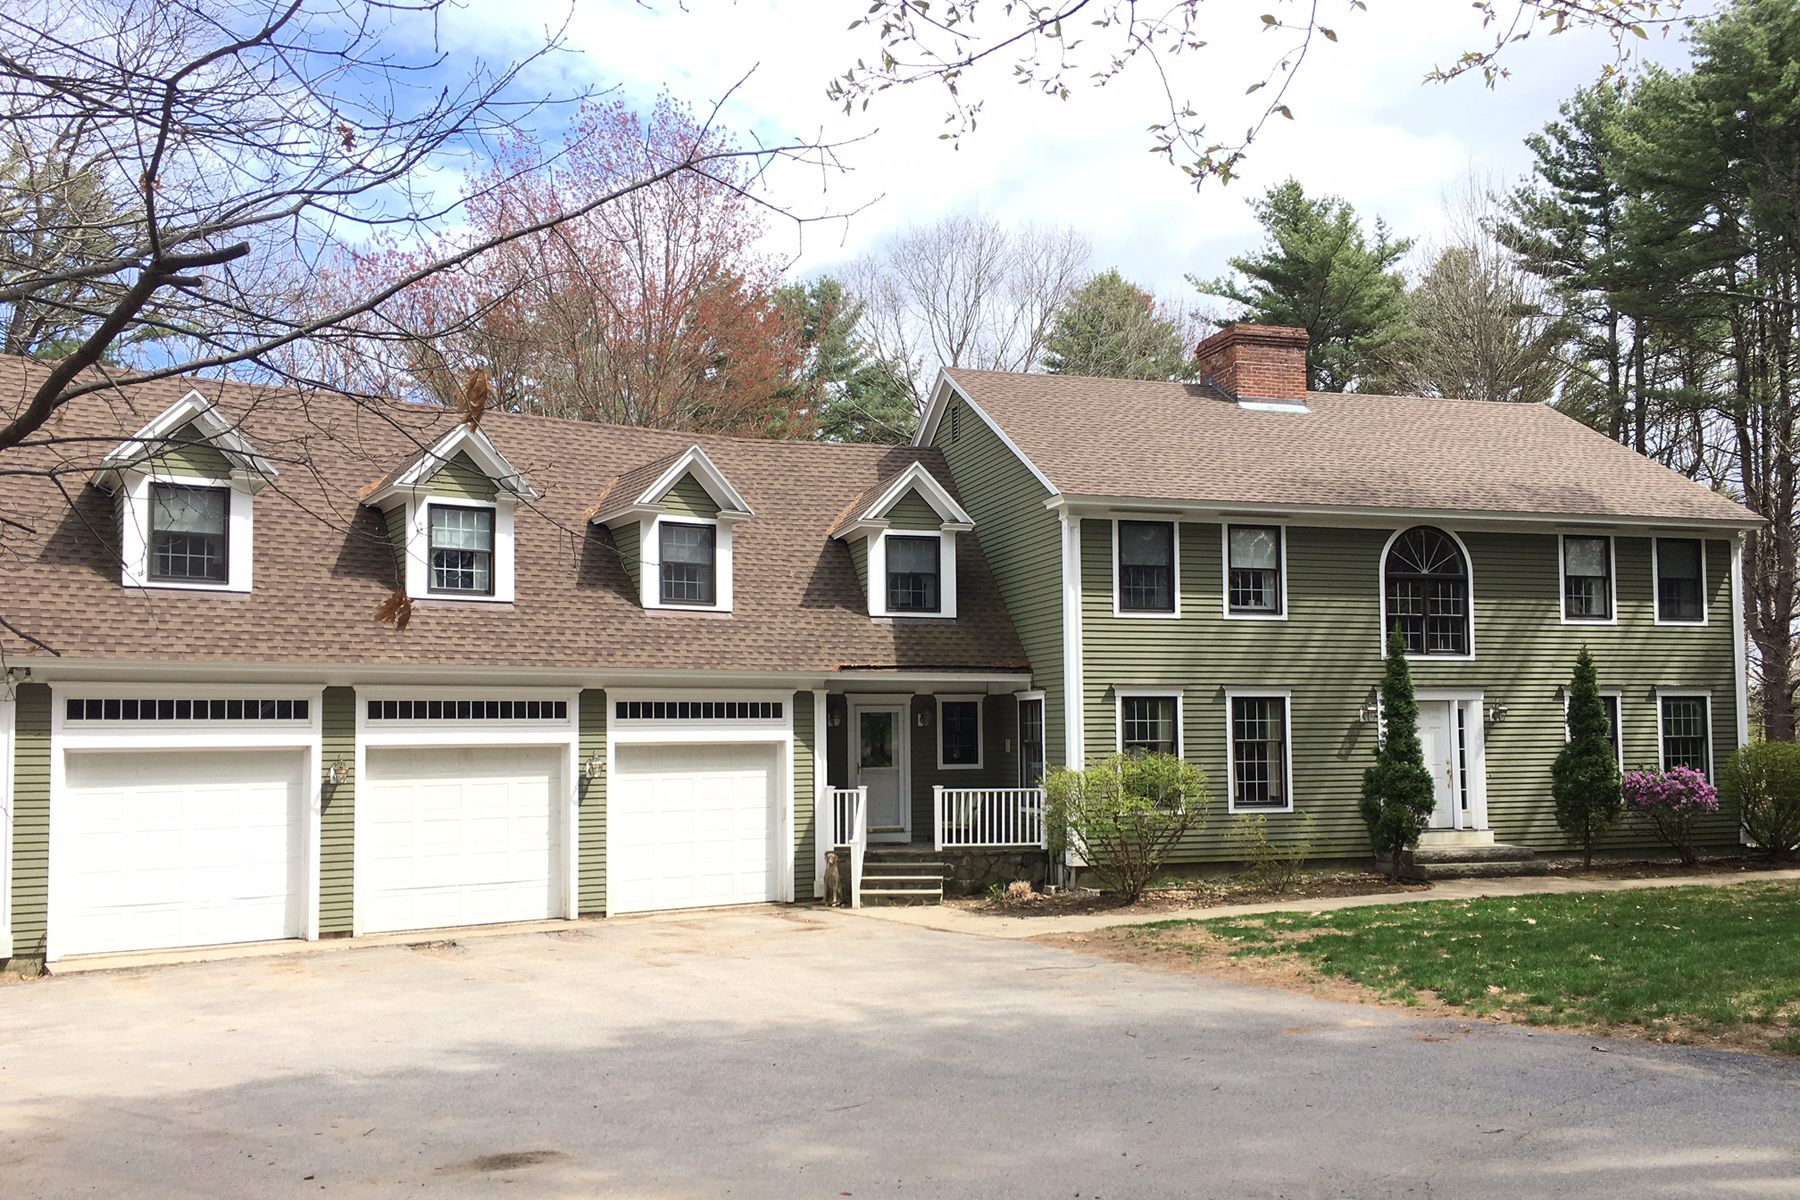 Single Family Home for Sale at 5 Squirrel Lane Kennebunk, Maine, 04043 United States